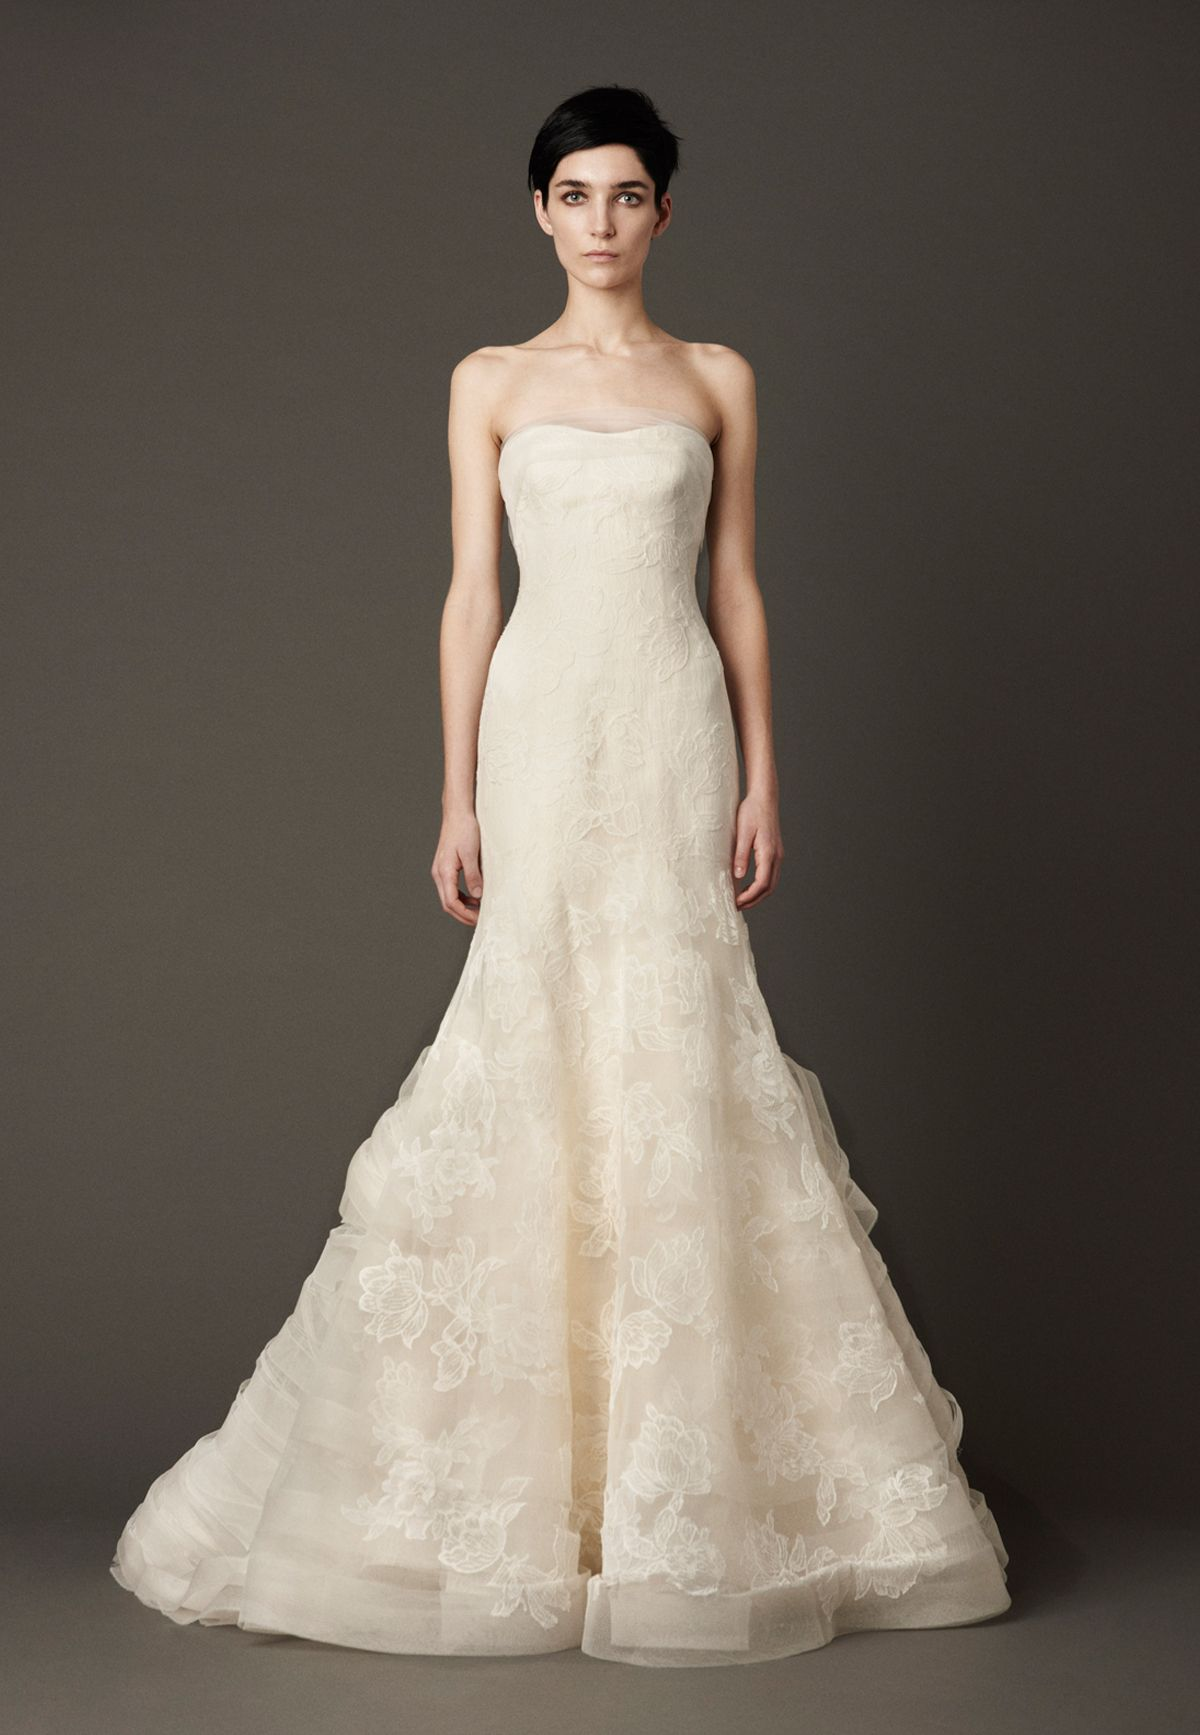 Presenting The Vera Wang Iconic Bridal Collection Browse Print And Share These Wedding Dresses Vera Wang Bridal Classic Wedding Dress Used Wedding Dresses